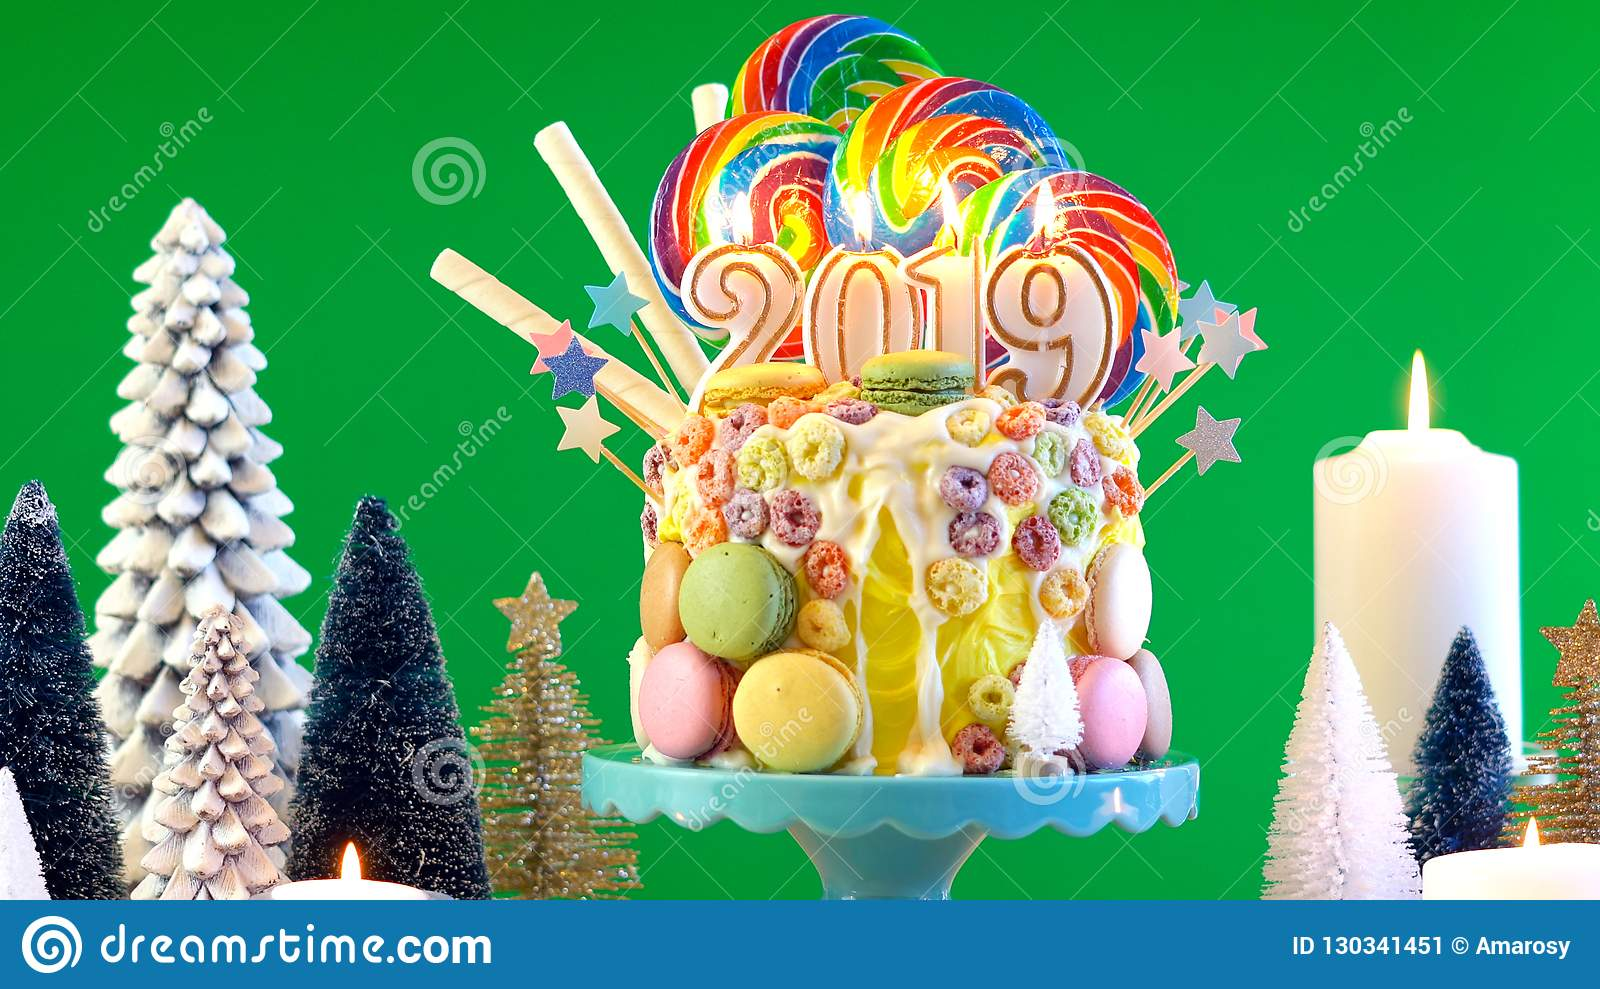 2019 Happy New Year S Candy Land Lollipop Drip Cake Stock Image